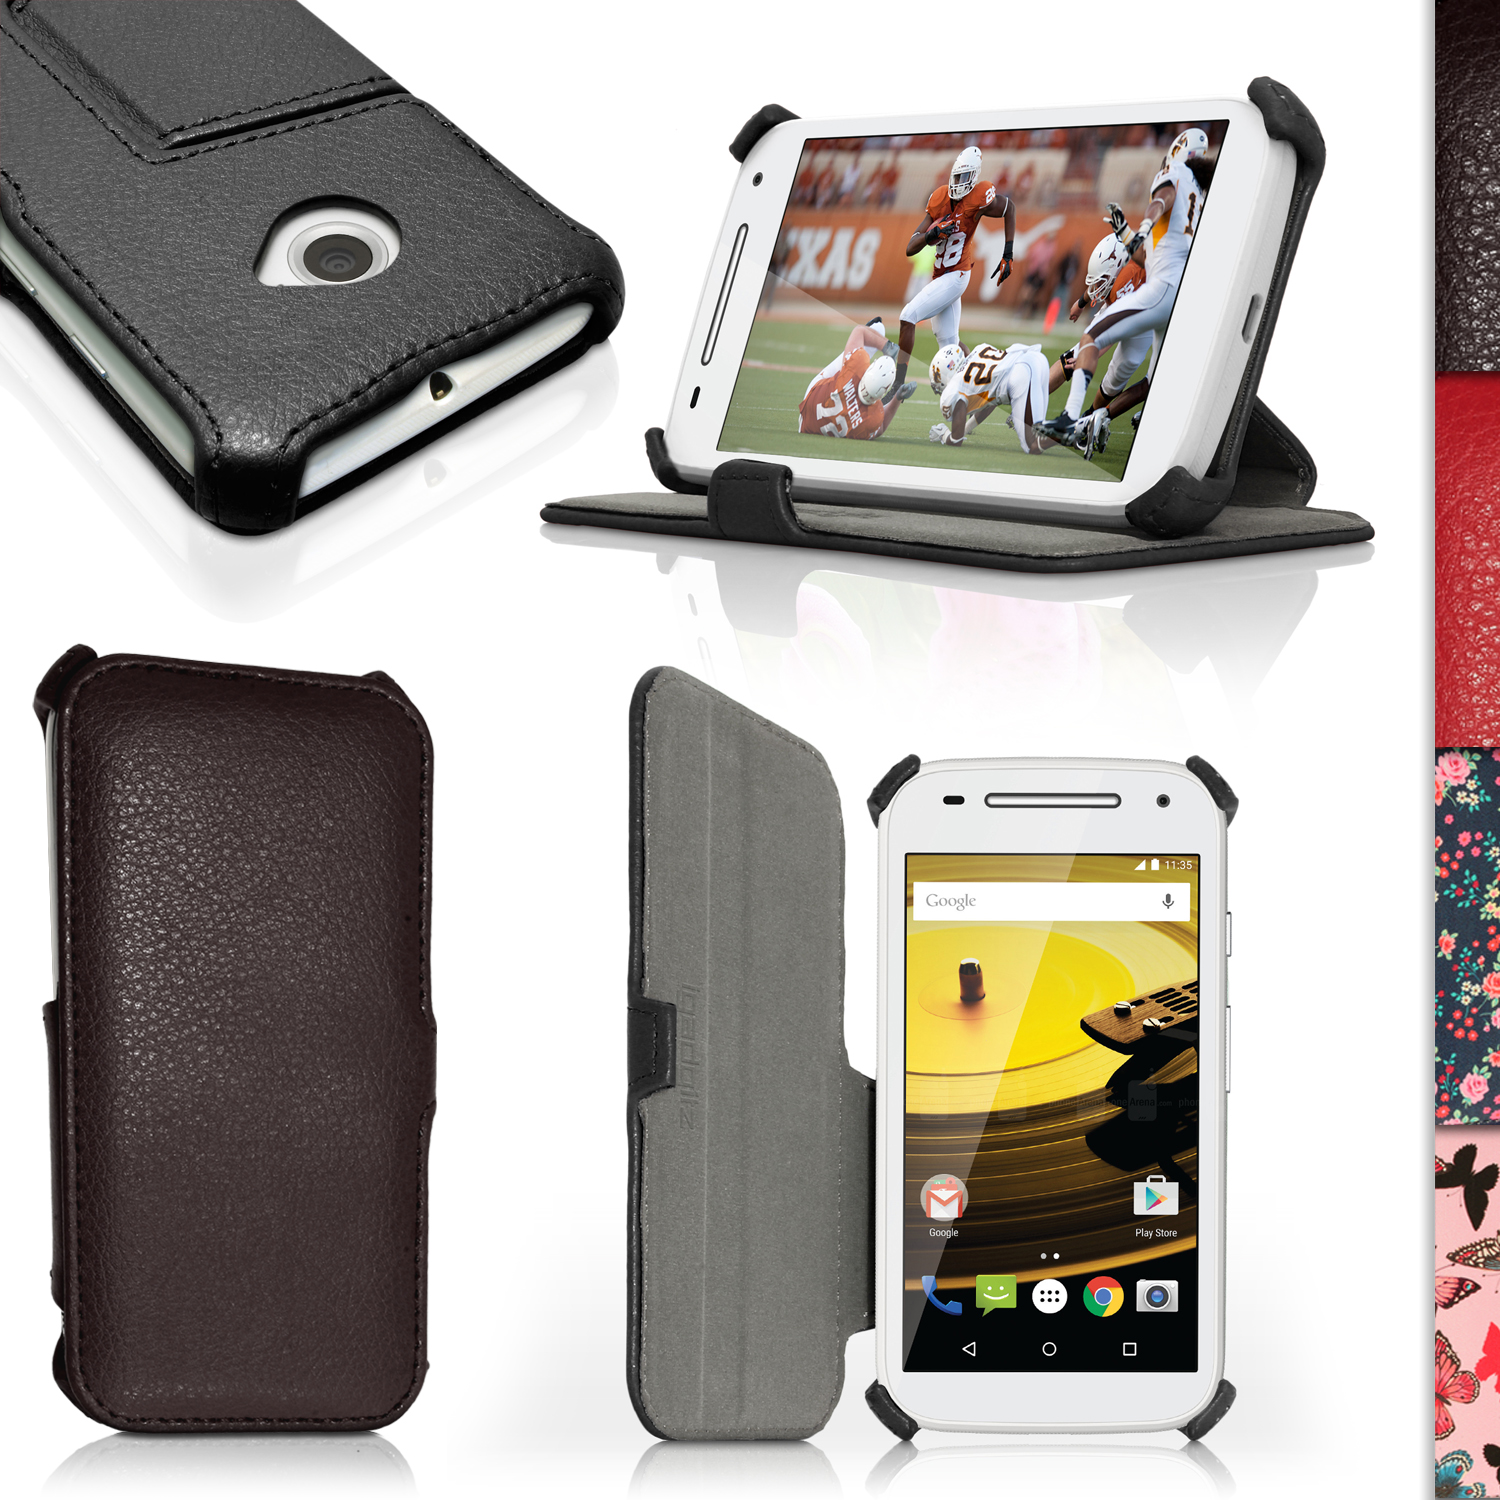 iGadgitz Folio PU Leather Case Cover for Motorola Moto E 2nd Generation 2015 XT1524 with Stand + Screen Protector